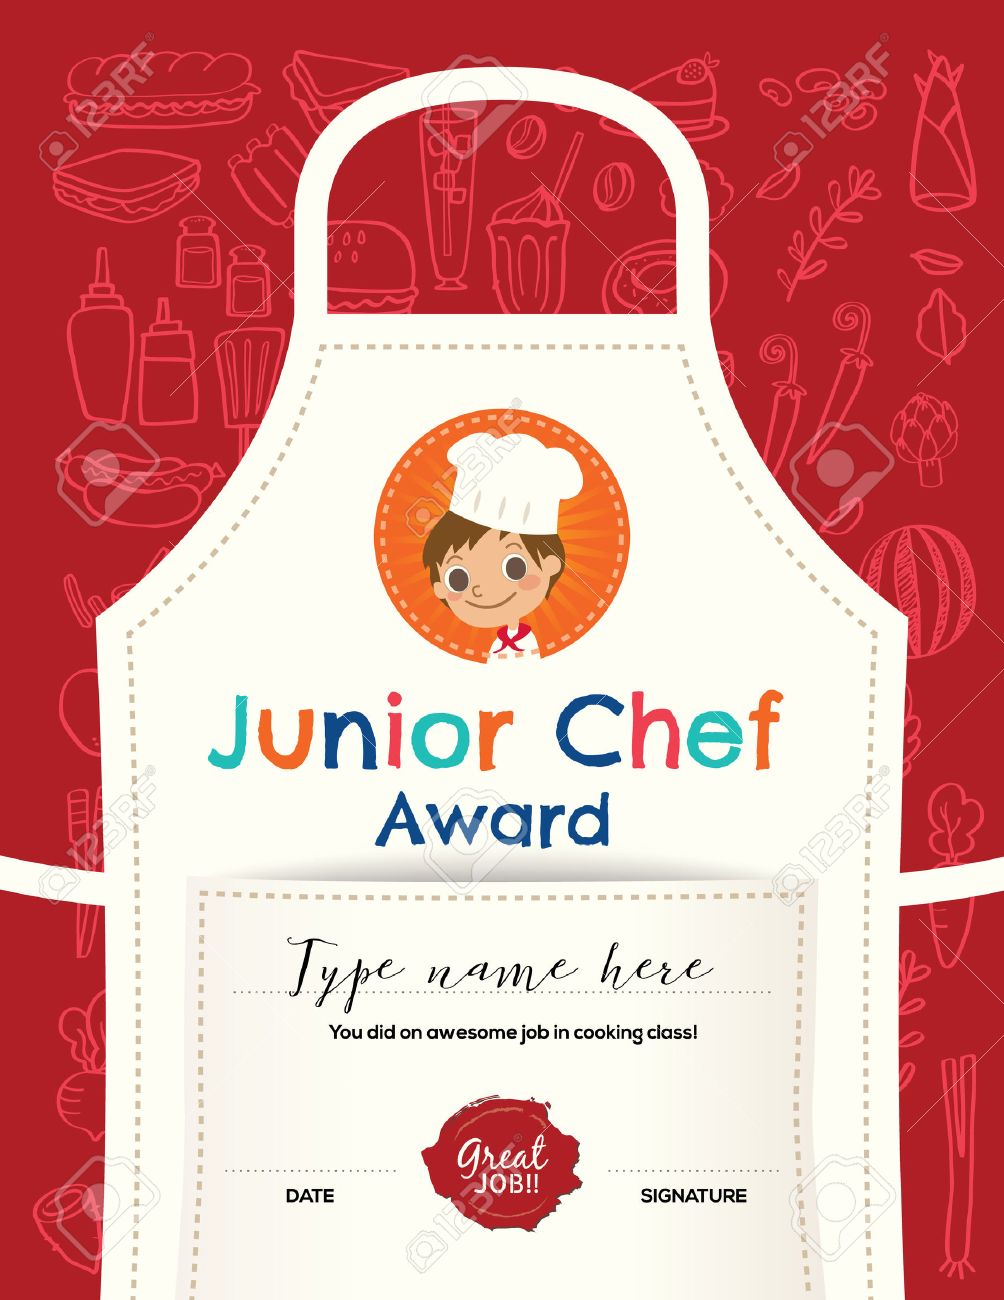 Kids Cooking class certificate design template with junior chef cartoon illustration on kitchen apron background - 55157576